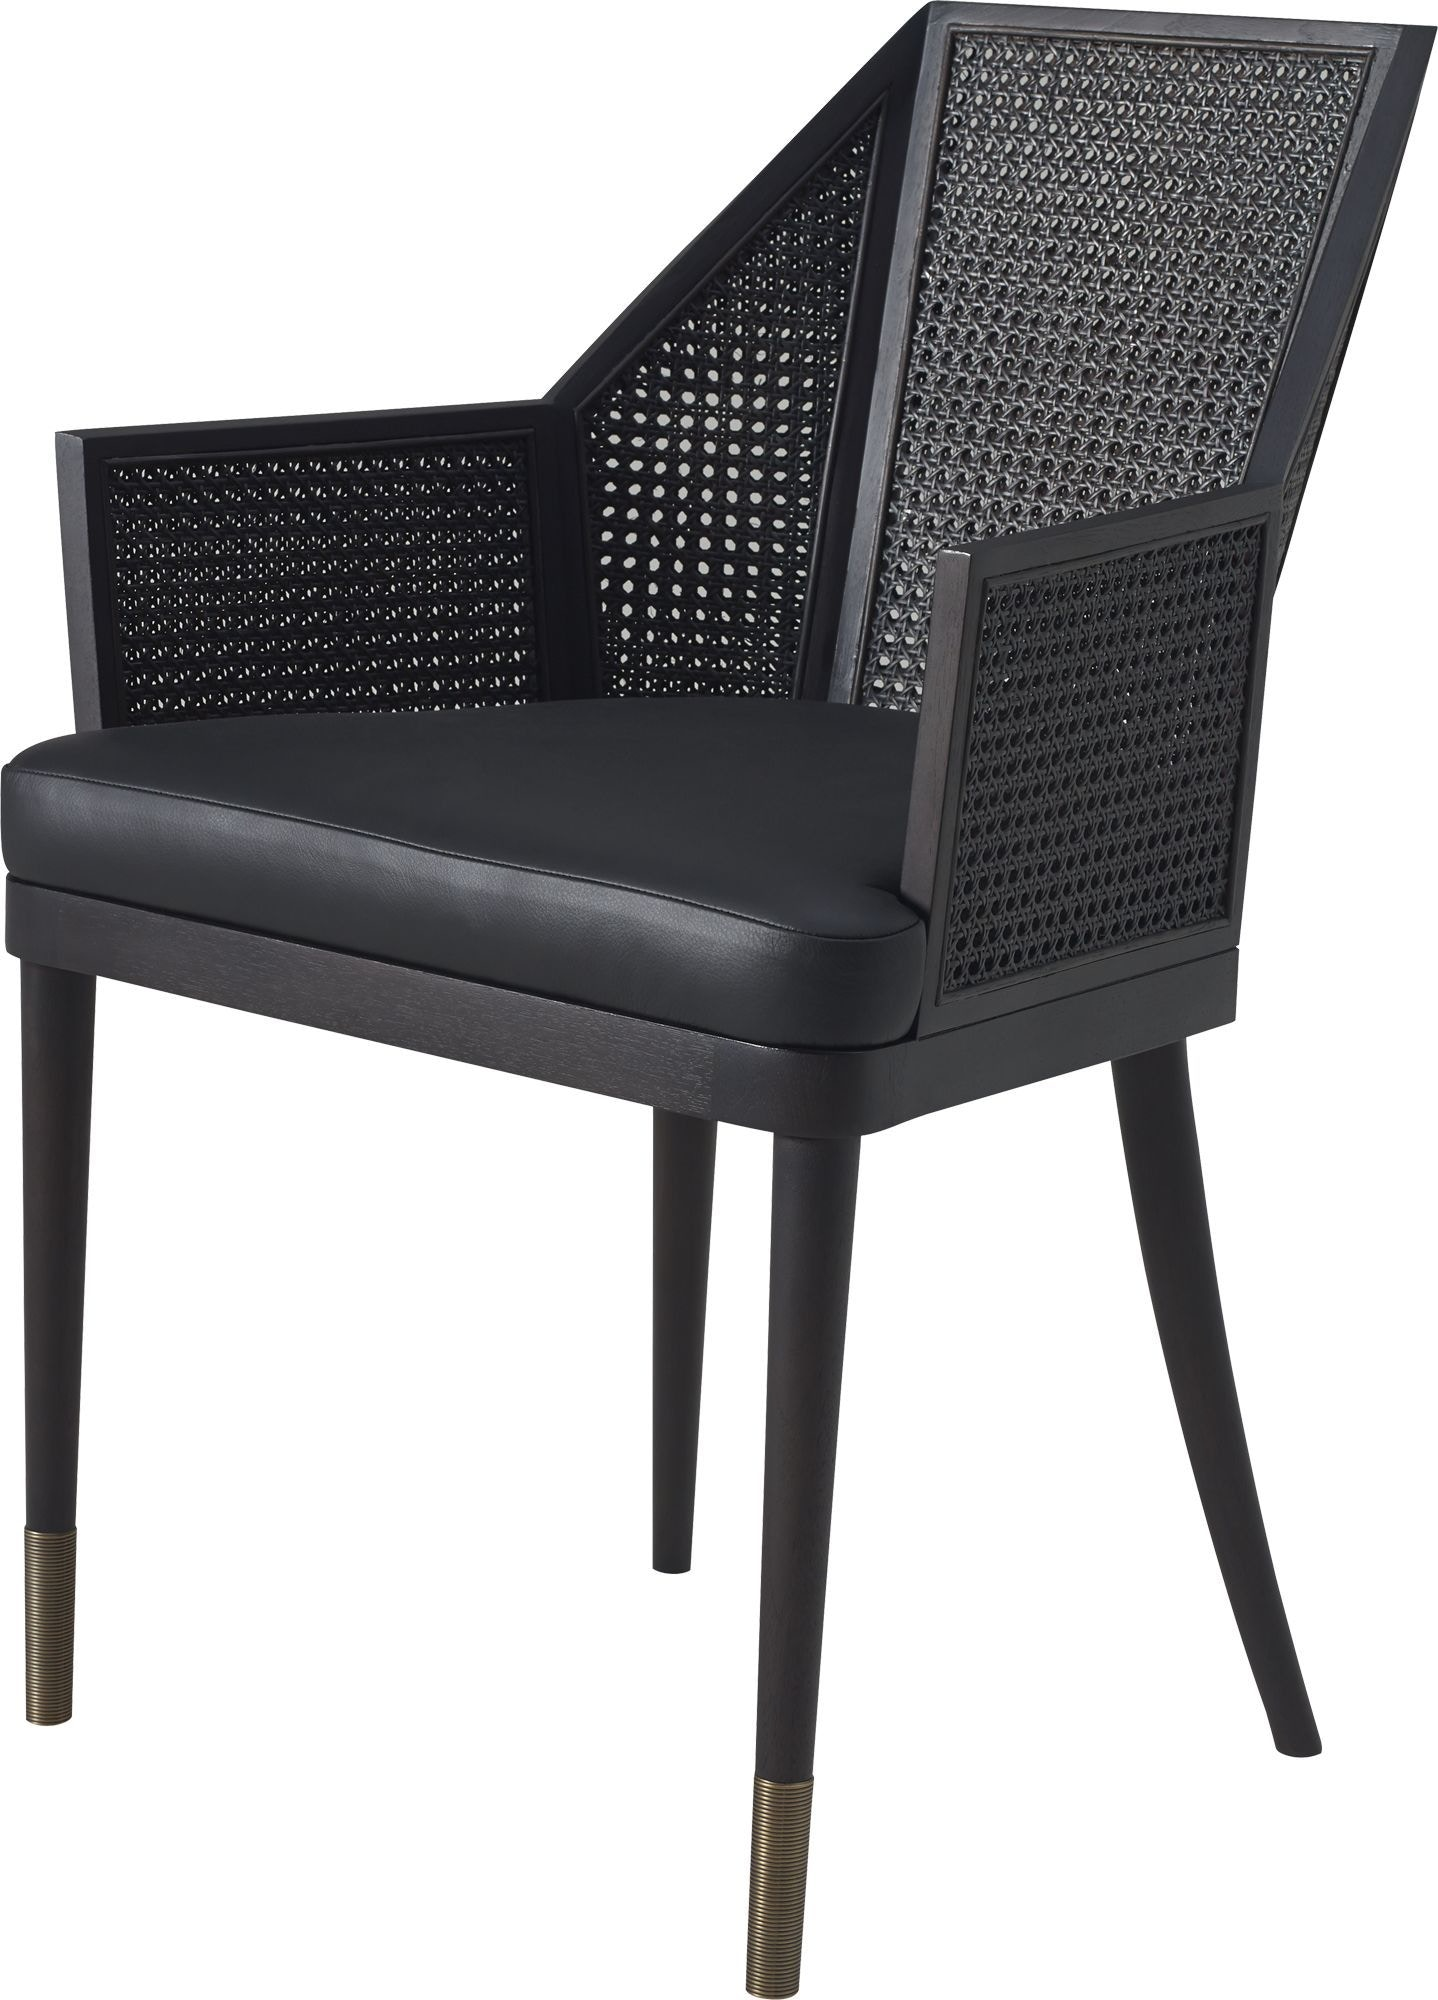 dining chairs with caning blue counter height milling road room cane arm chair mr7041 today s home